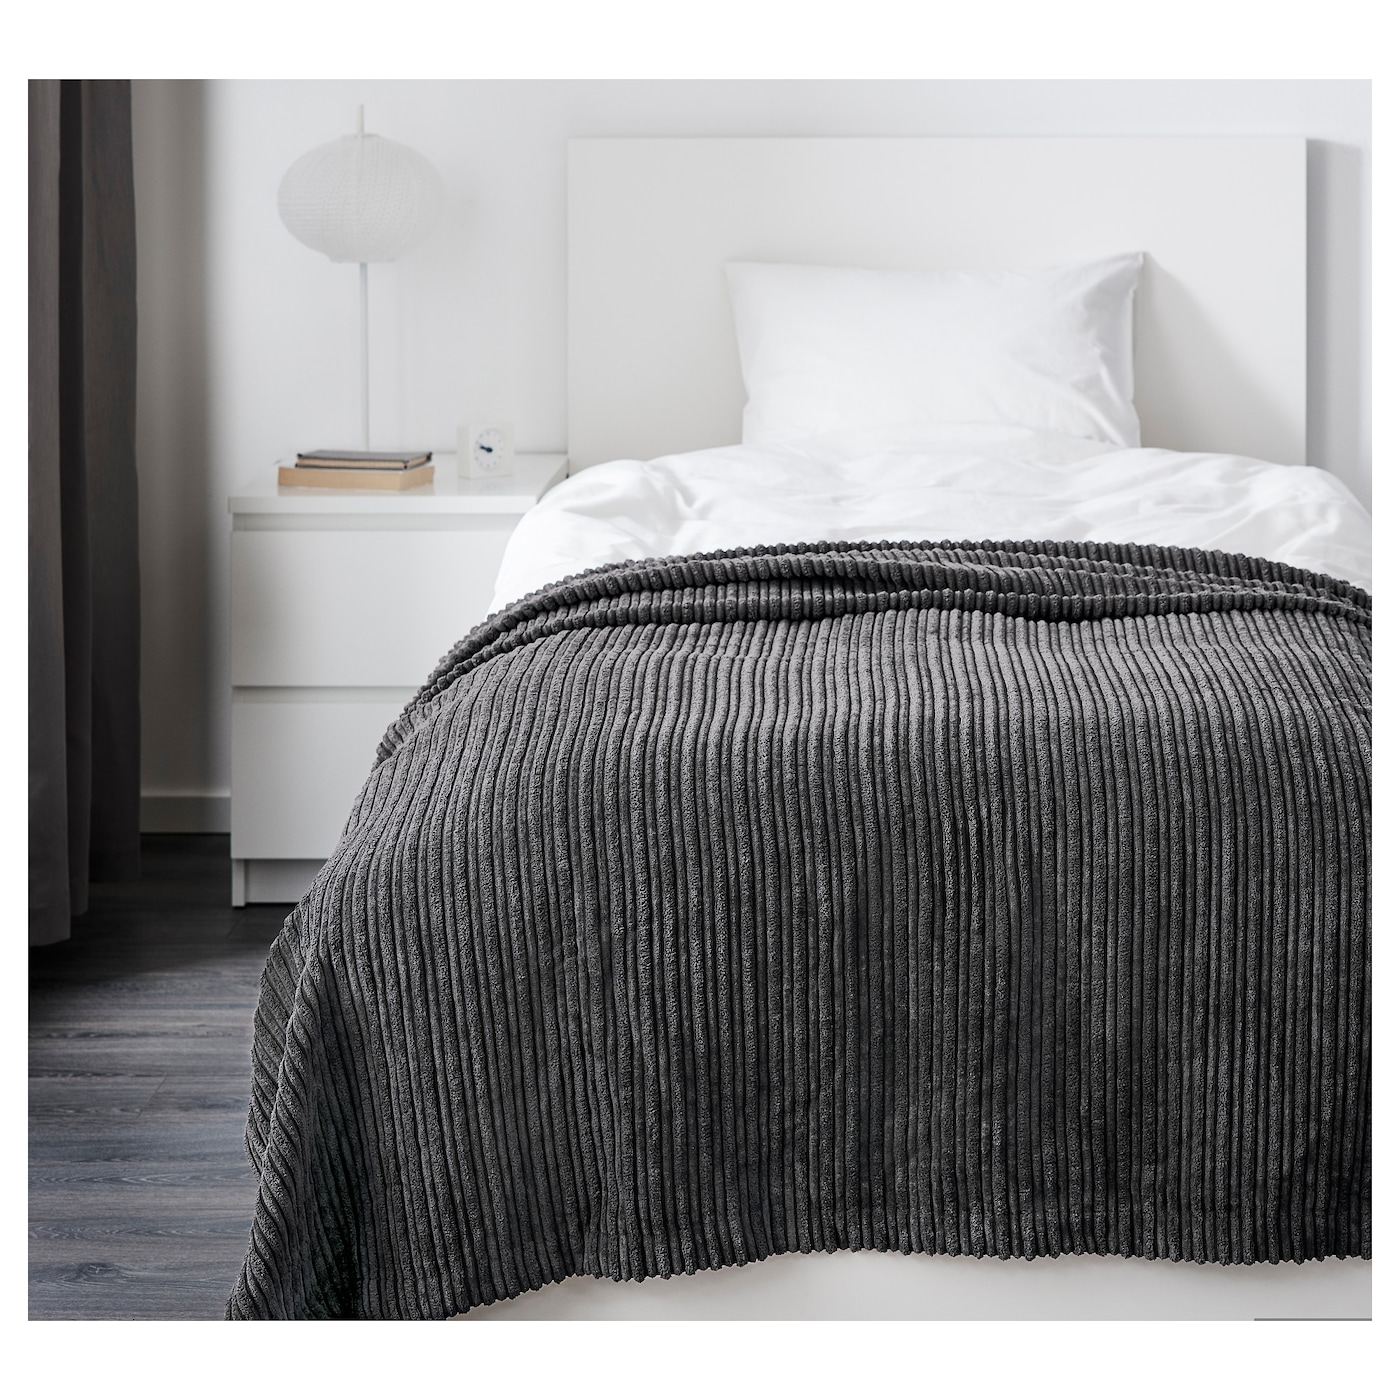 bedspreads ikea. Black Bedroom Furniture Sets. Home Design Ideas